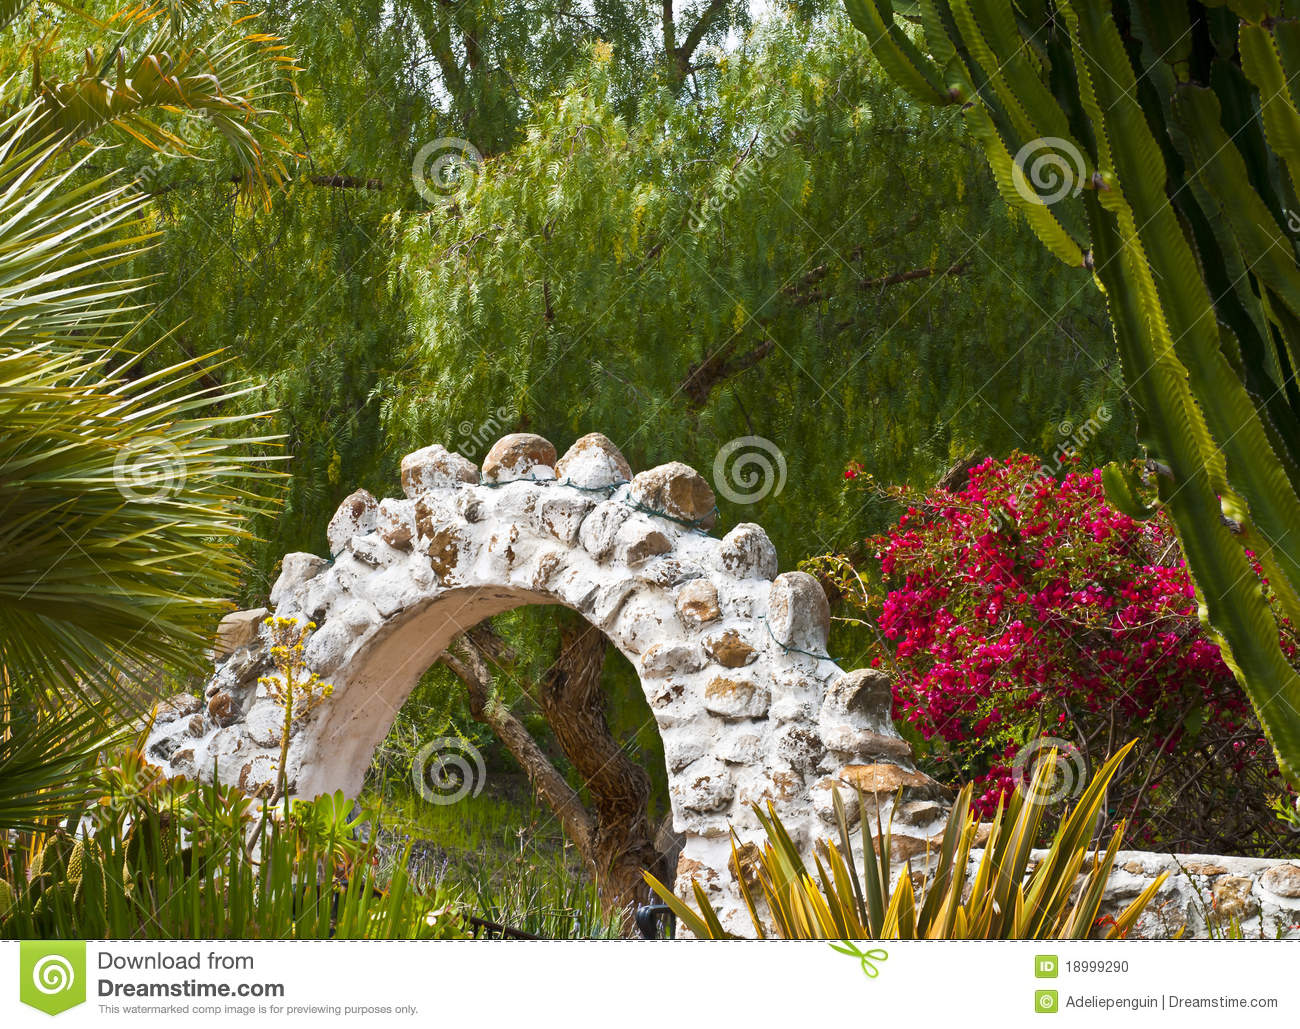 jardim pedras e flores:Pictures of Stone Arches with Flowers